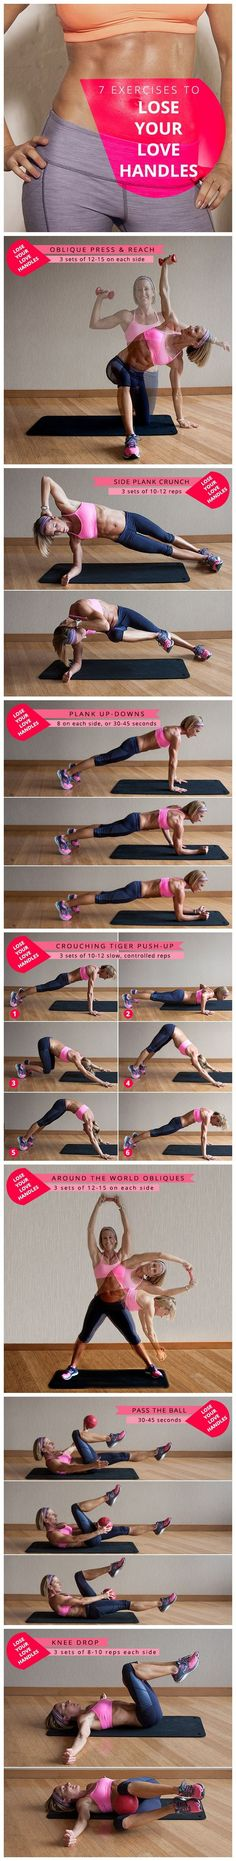 How To Lose Love Handles?; Exercises and Diet Plan To Lose Excess Fat